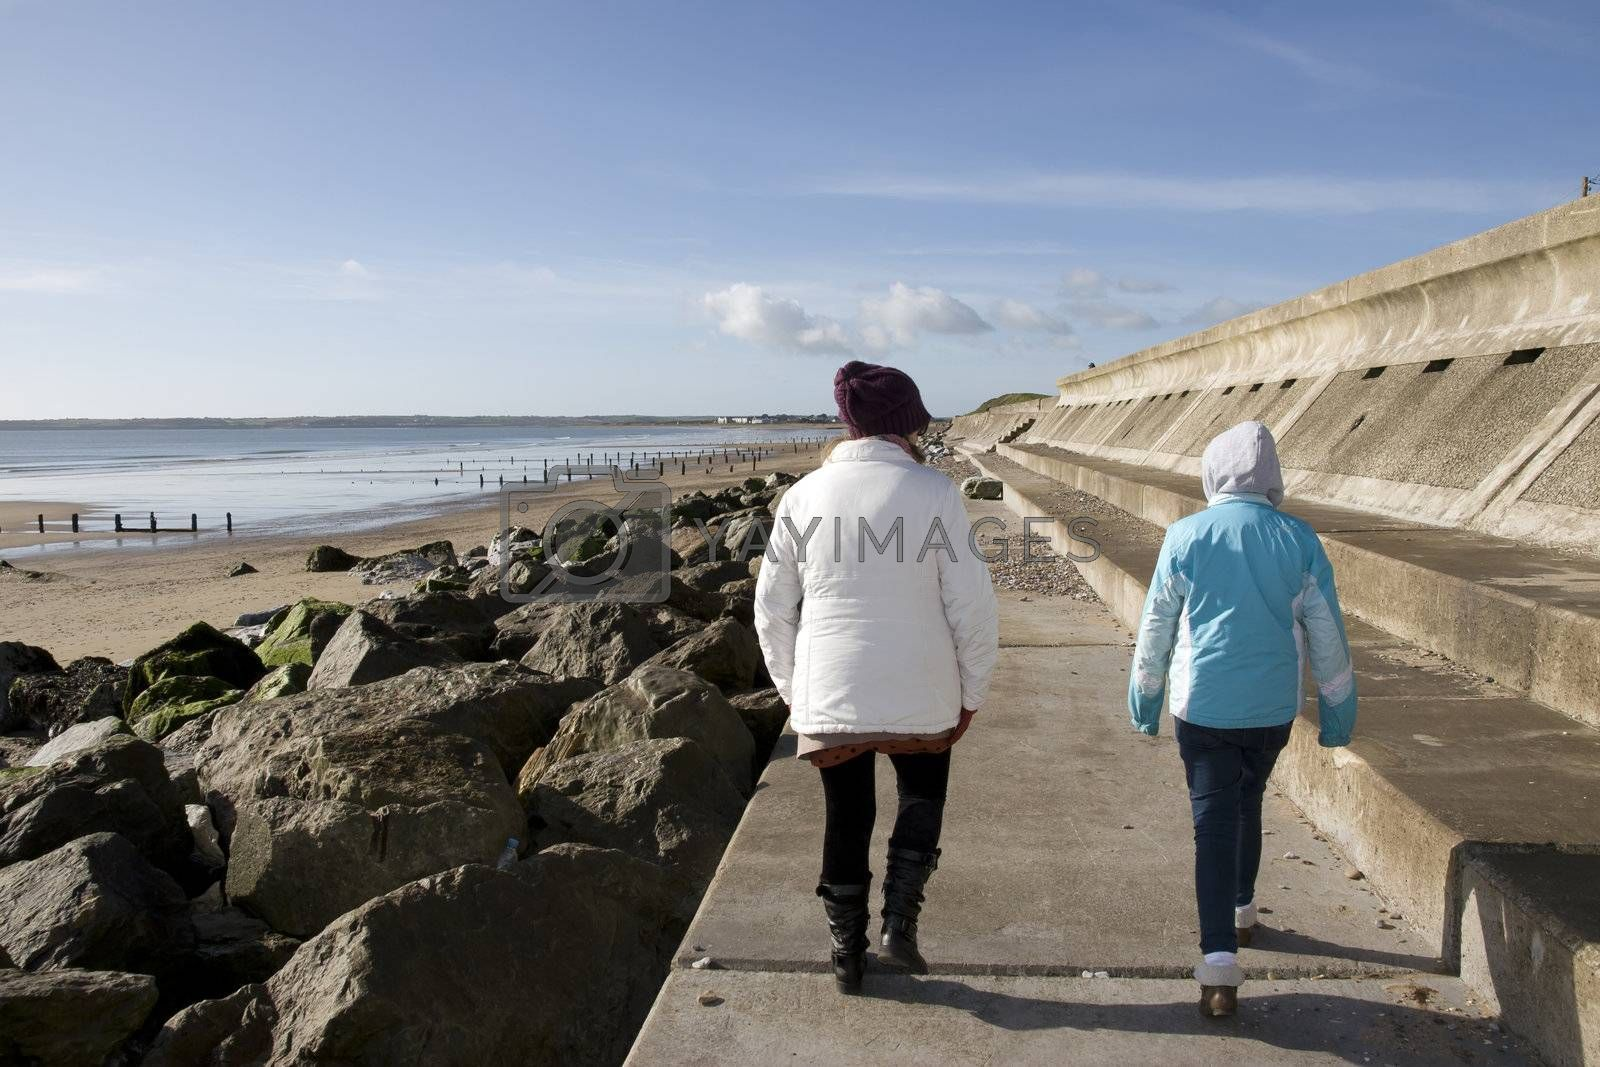 mother and daughter strolling along the beach promenade in Youghal county Cork Ireland